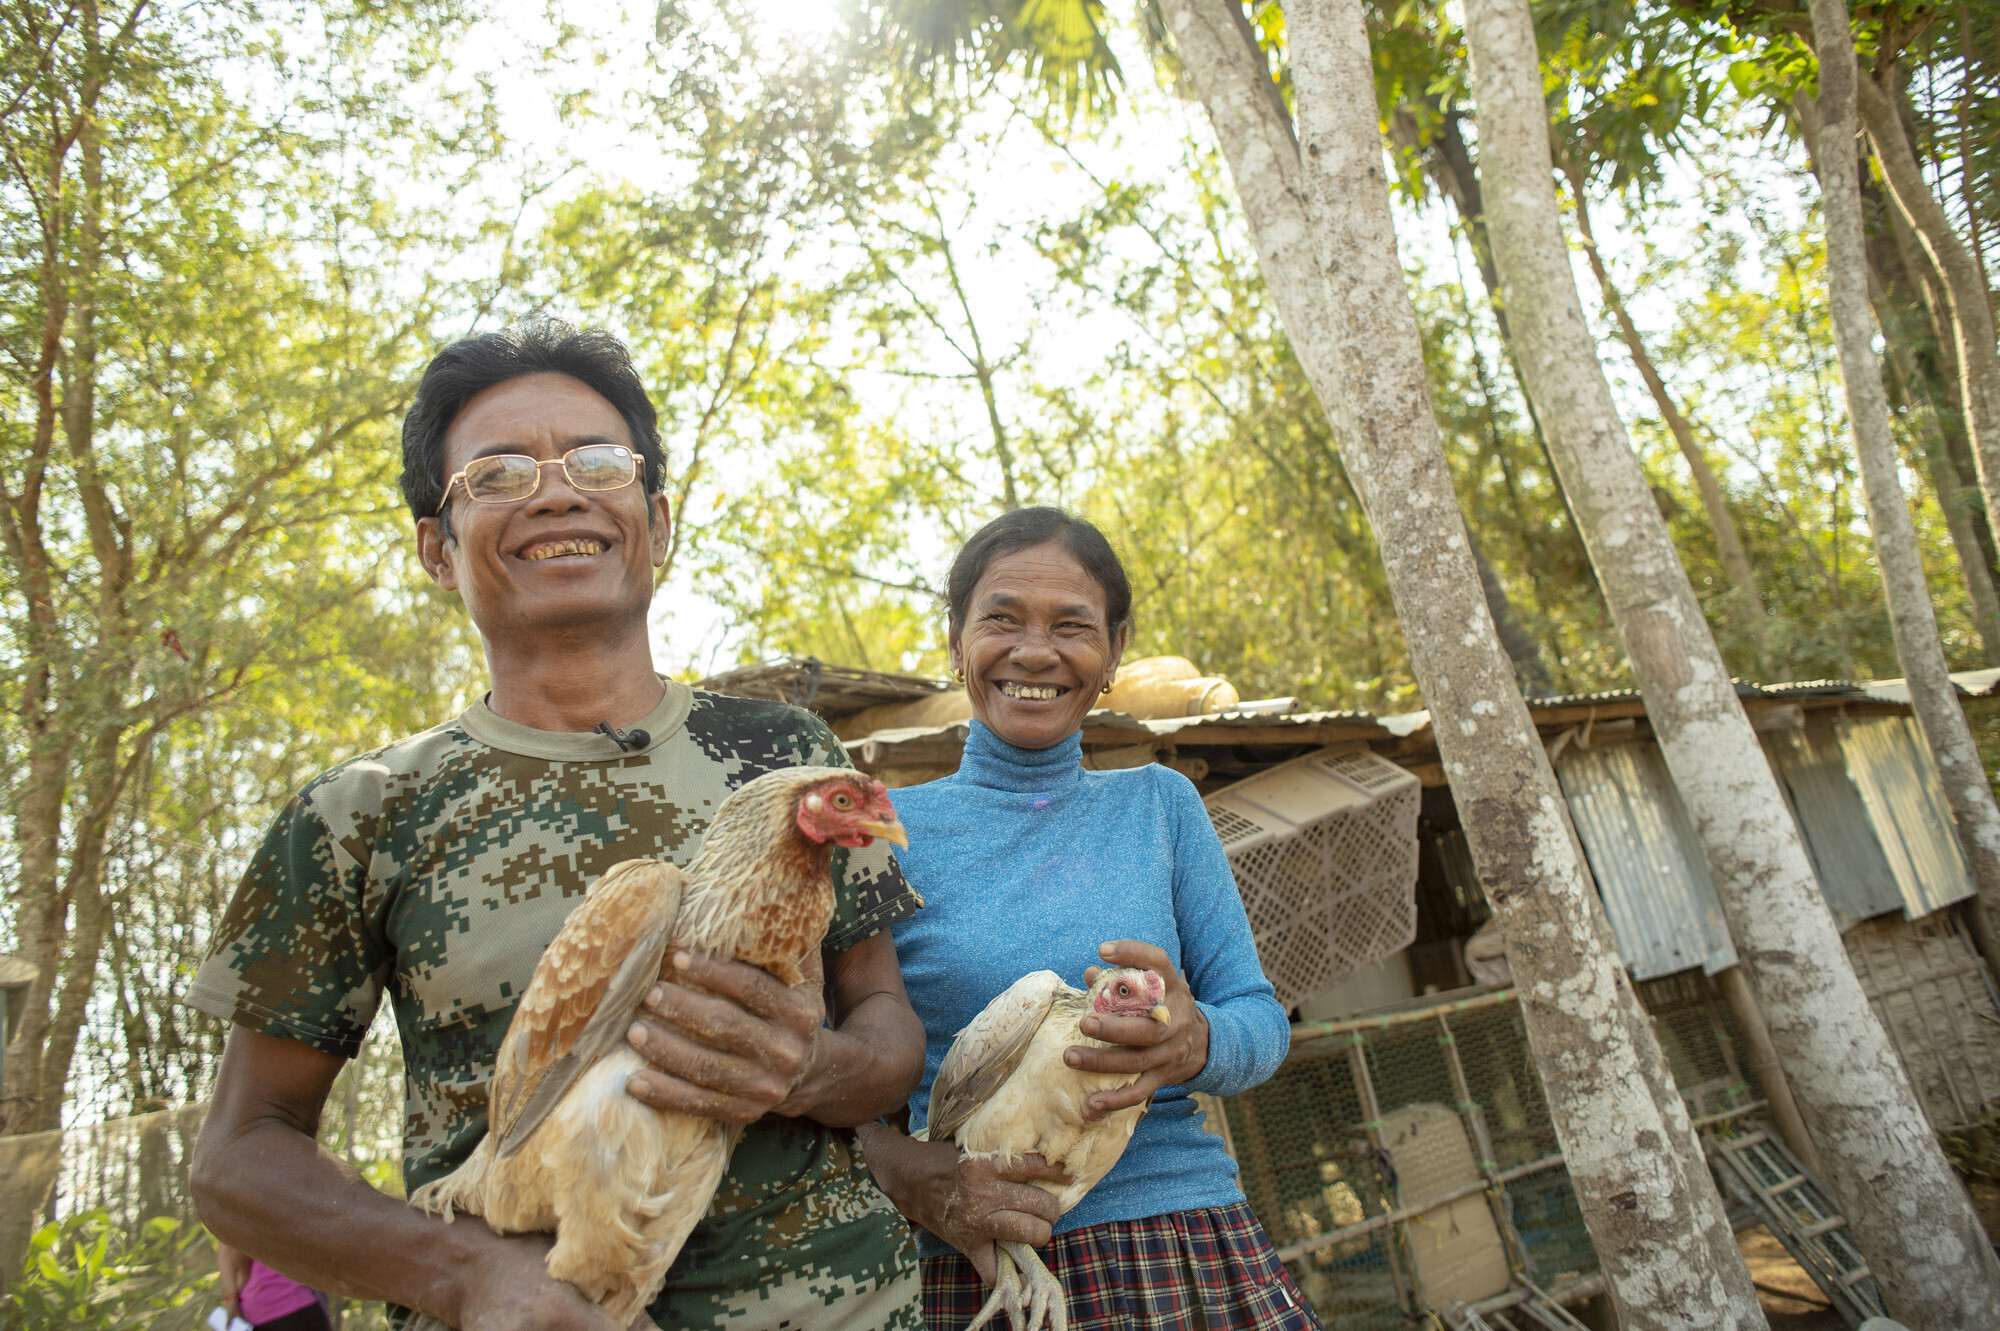 Chim Yean and Reach Koeun with chickens at their farm in the village of Prey Toum, Cambodia. Your support has allowed them to purchase the tools, seeds and other necessities to build a thriving farm. (MCC photo/ Matthew Lester)